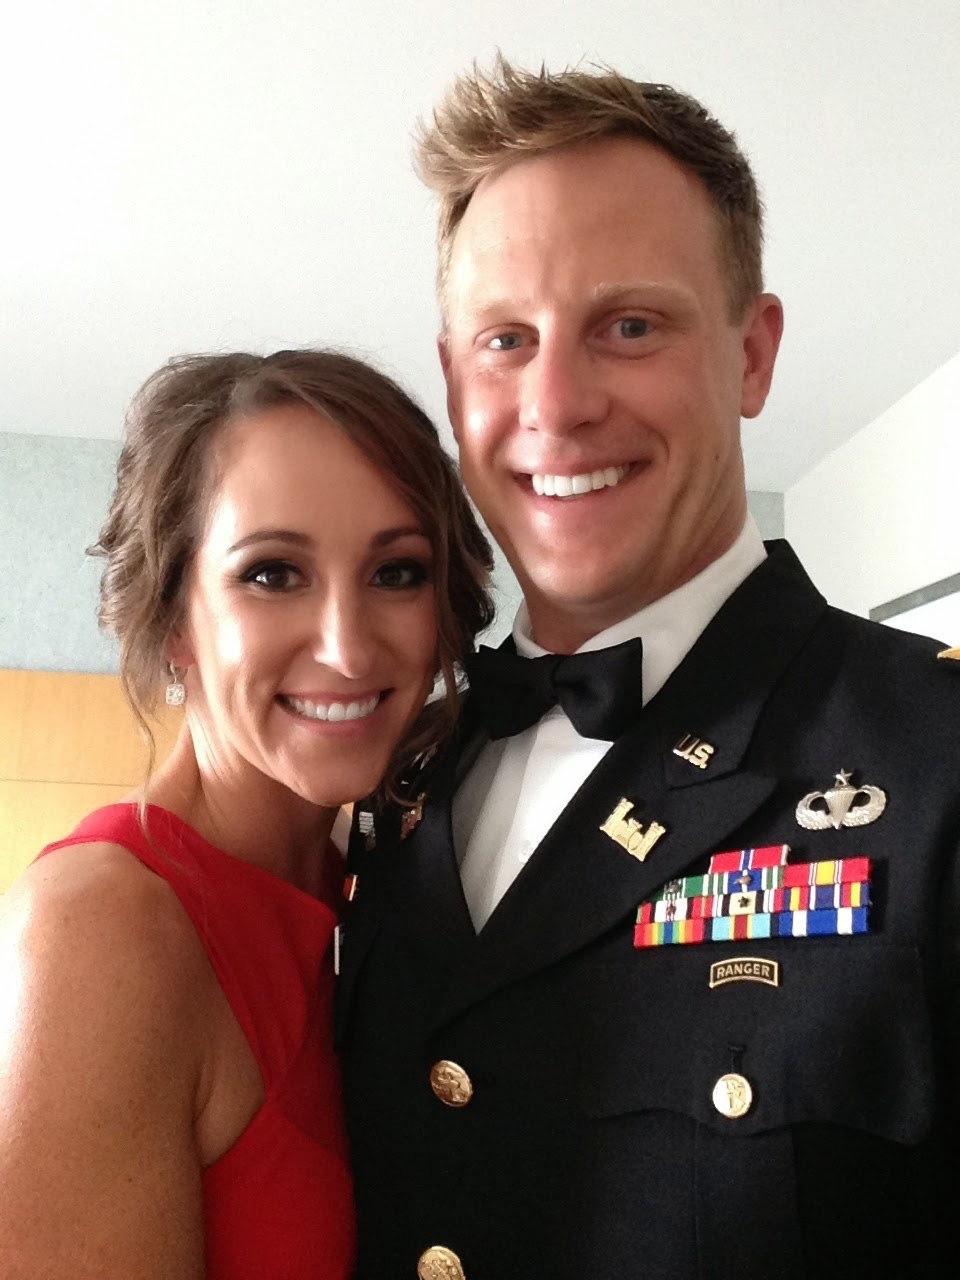 Proud Military Spouse